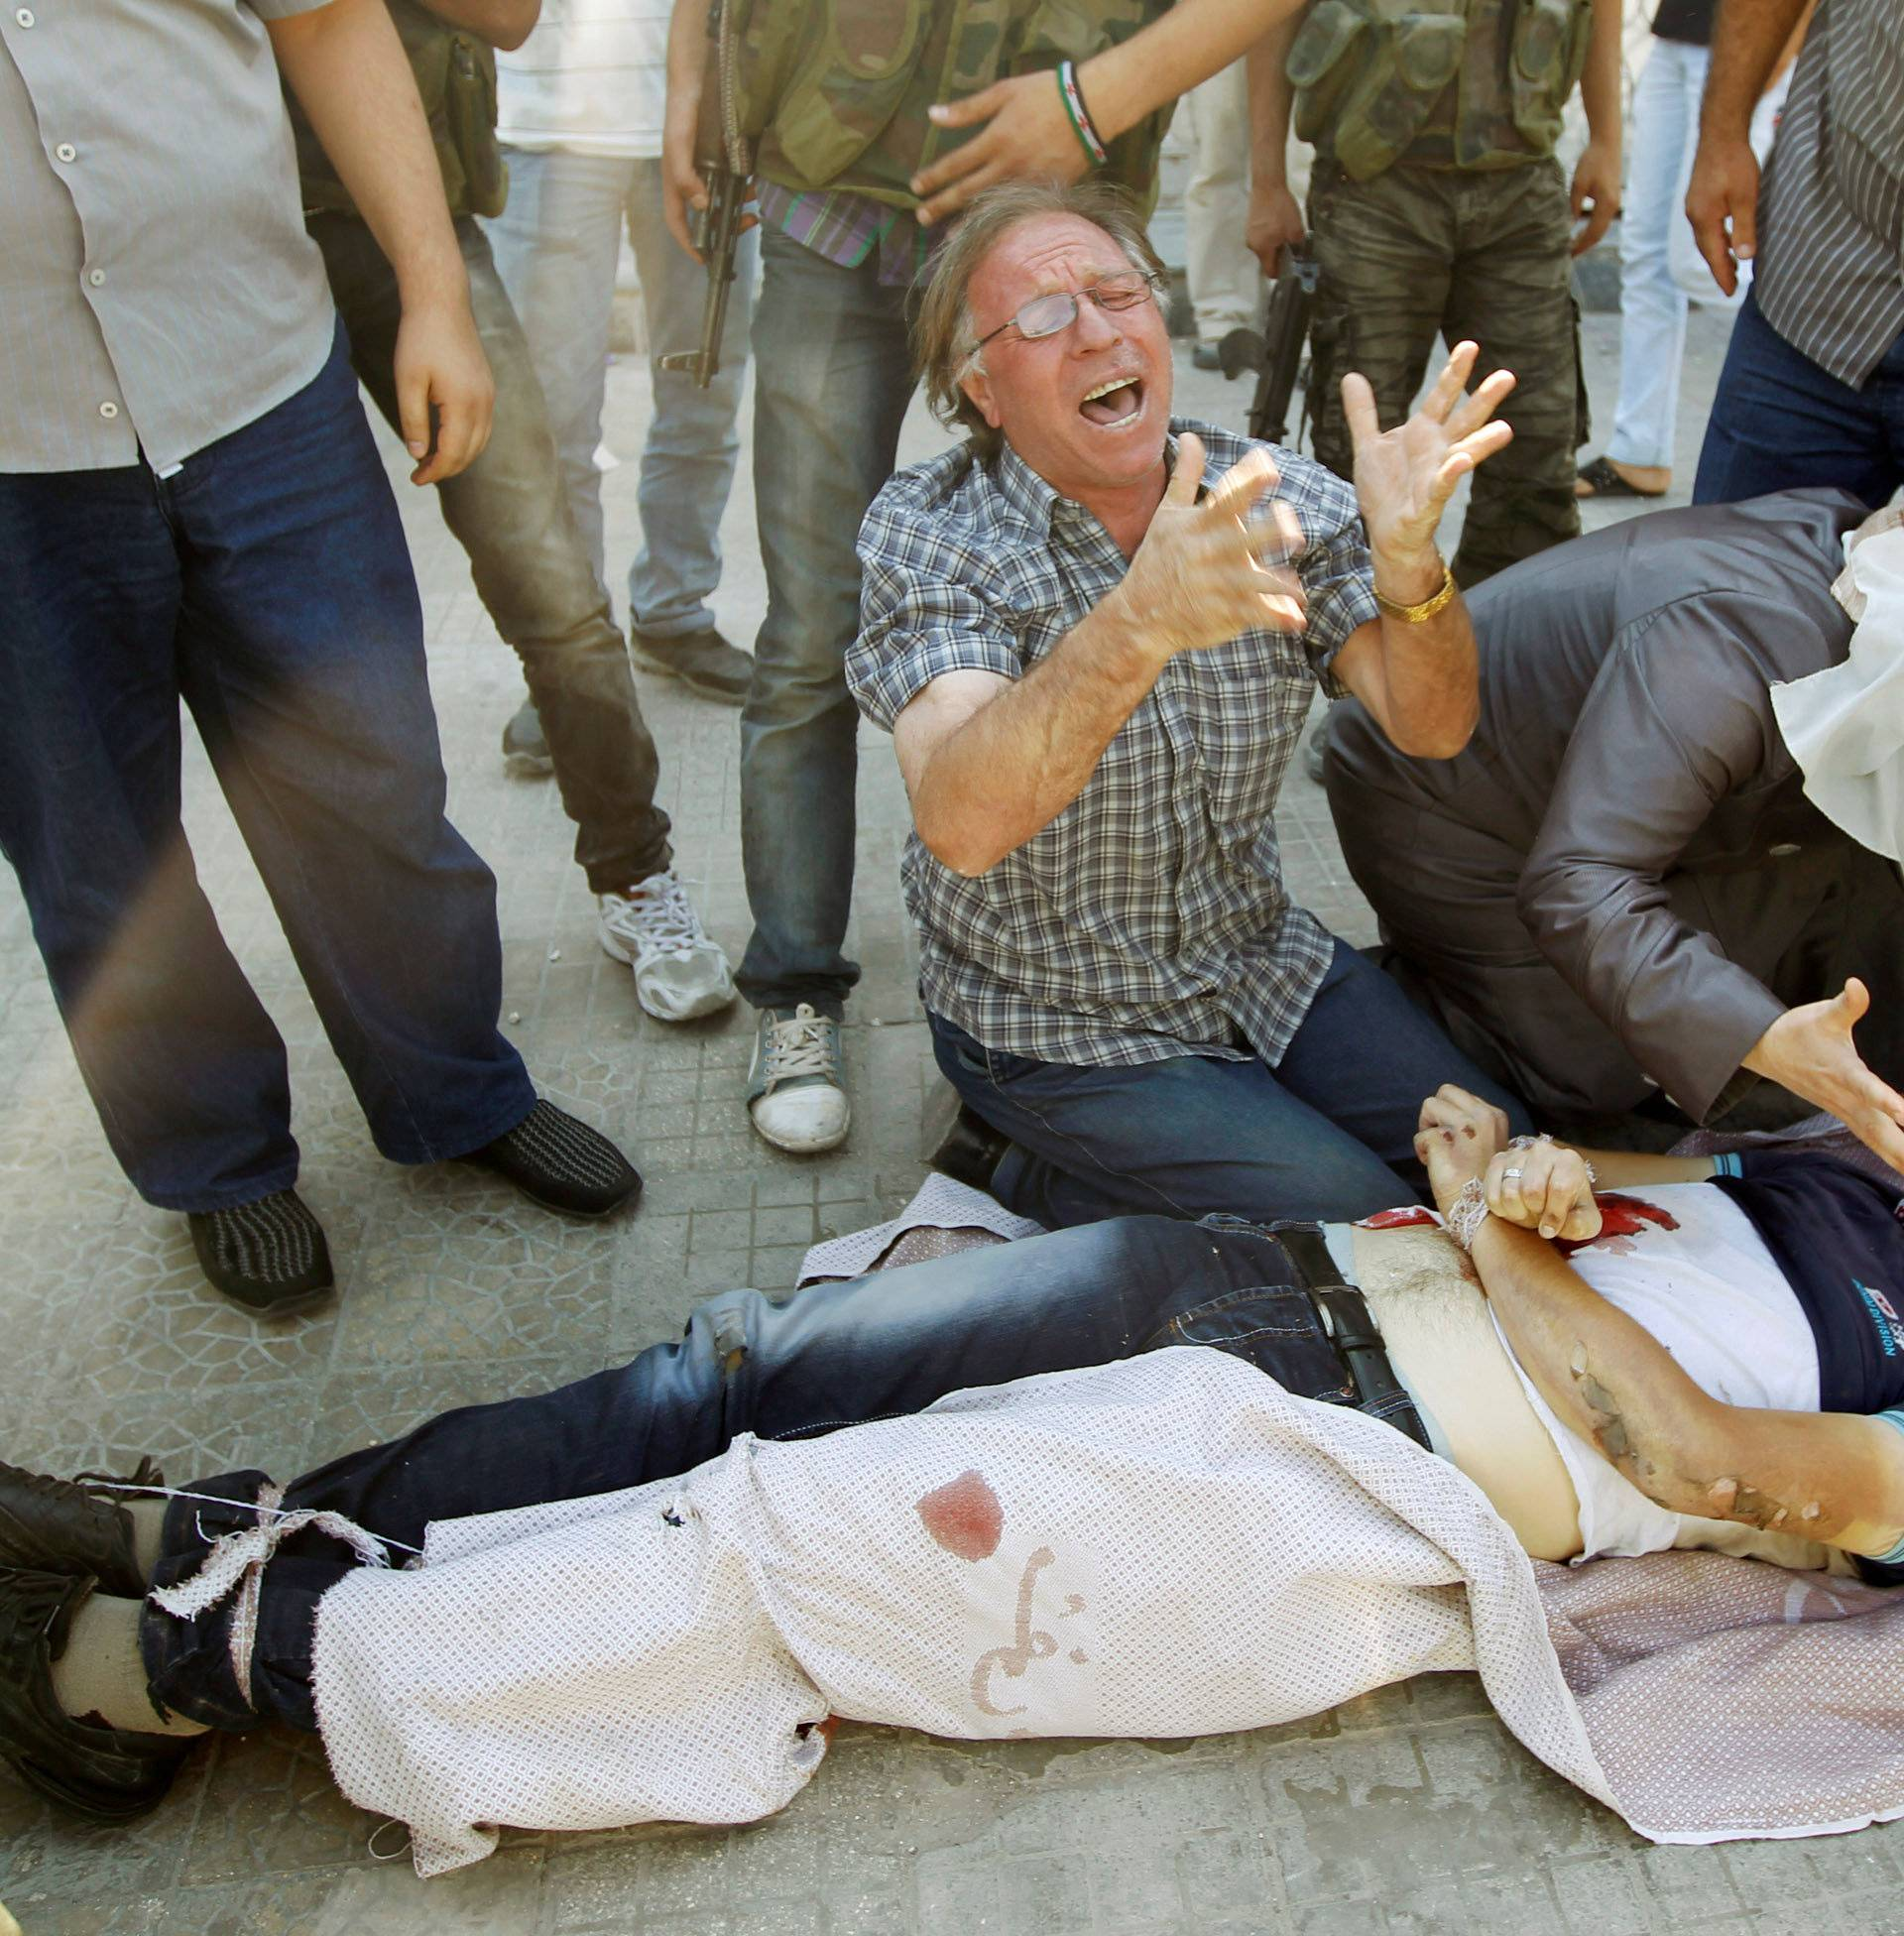 FILE PHOTO: A man and woman cry over the body of their son in Aleppo